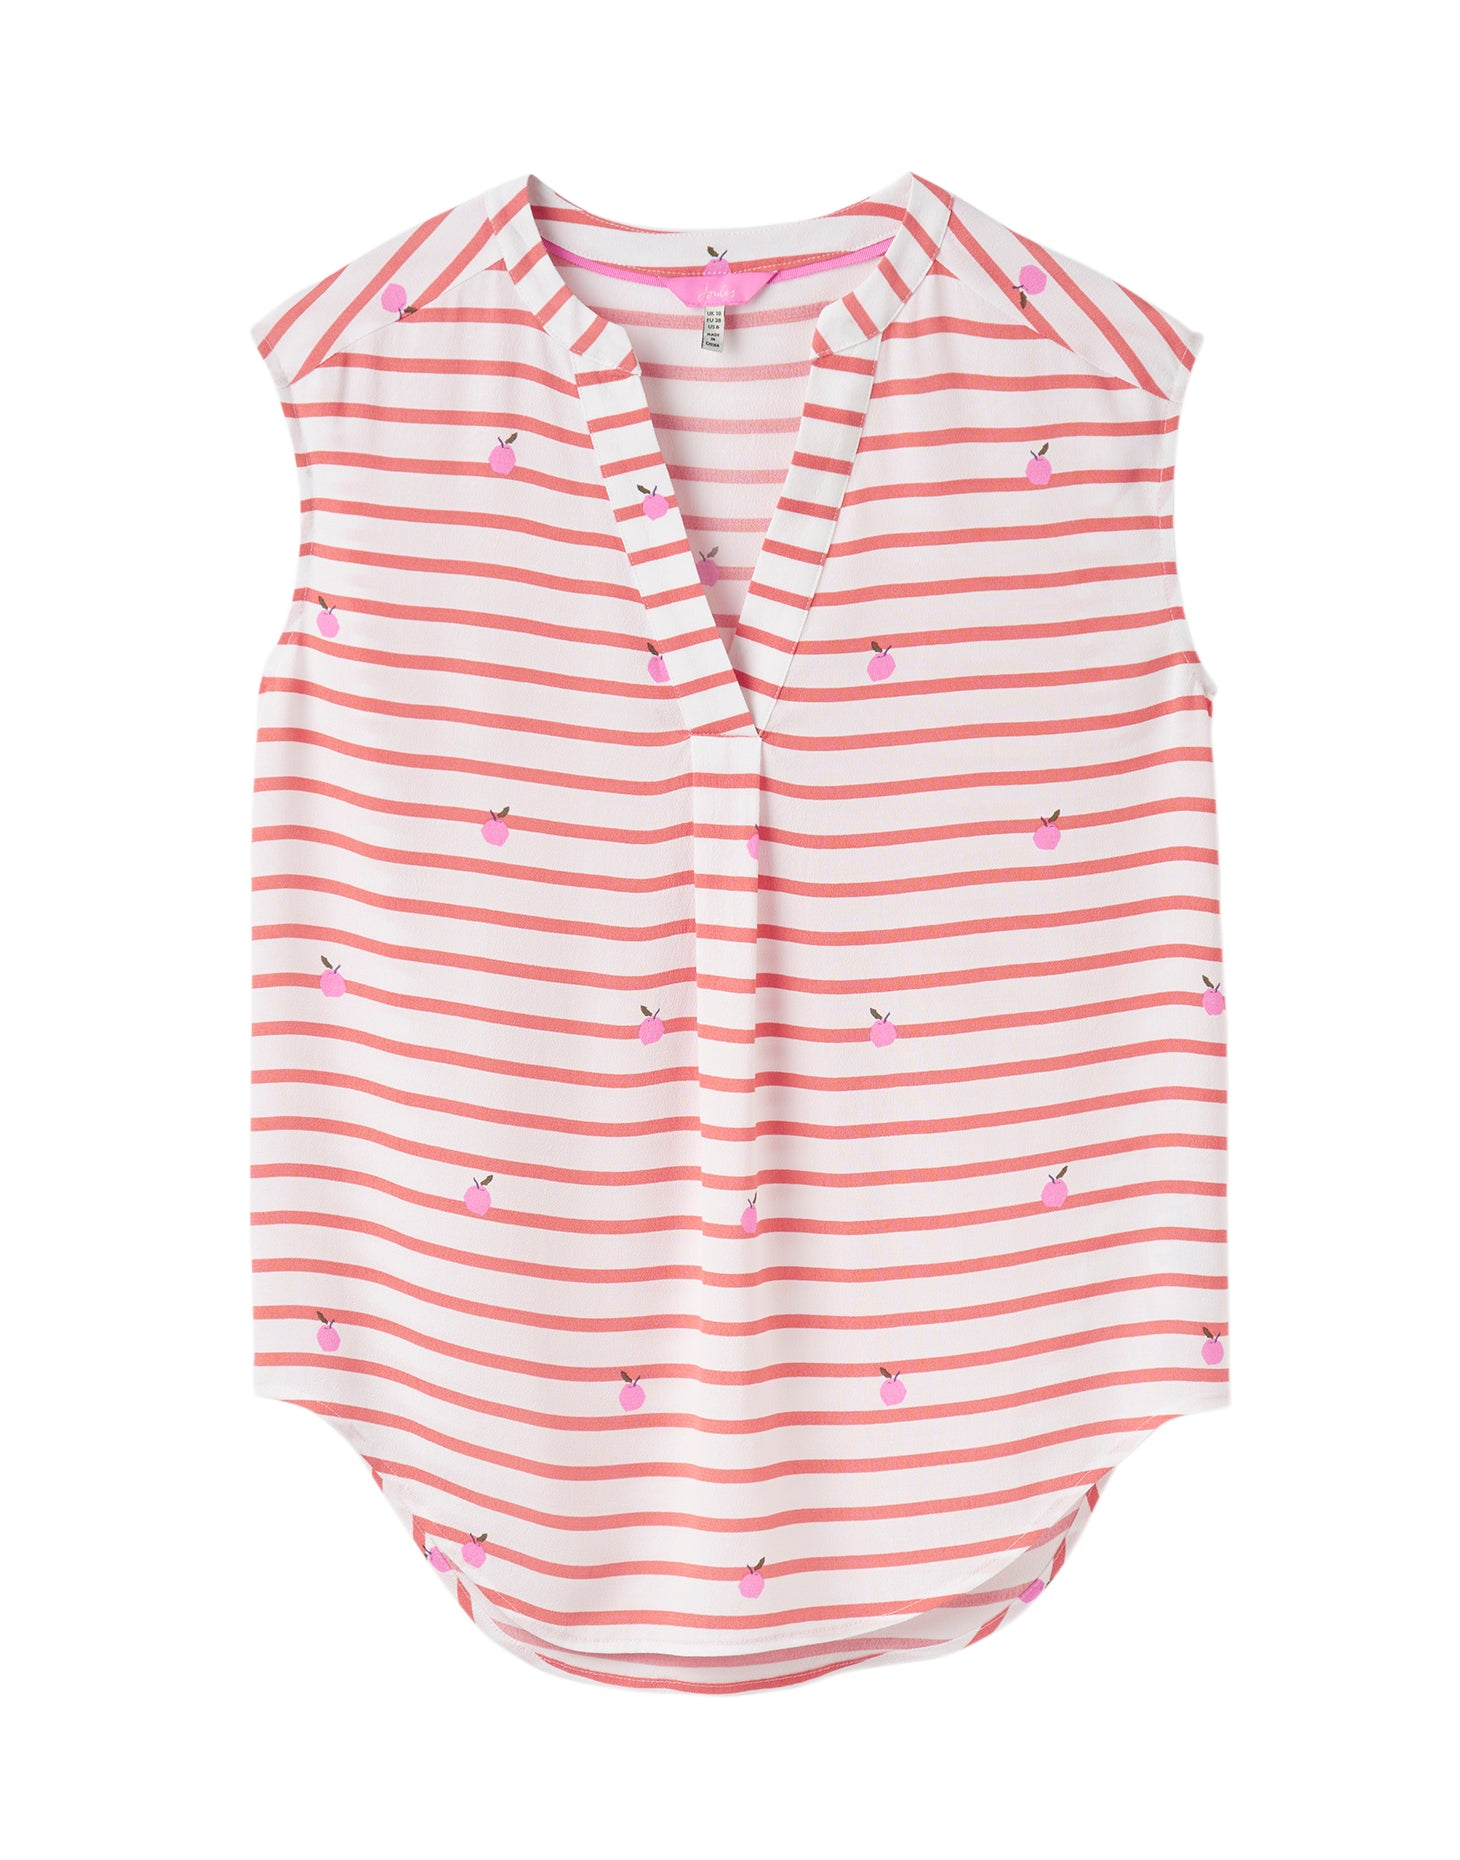 Joules Jae Woven Top for Ladies in Orange Stripe